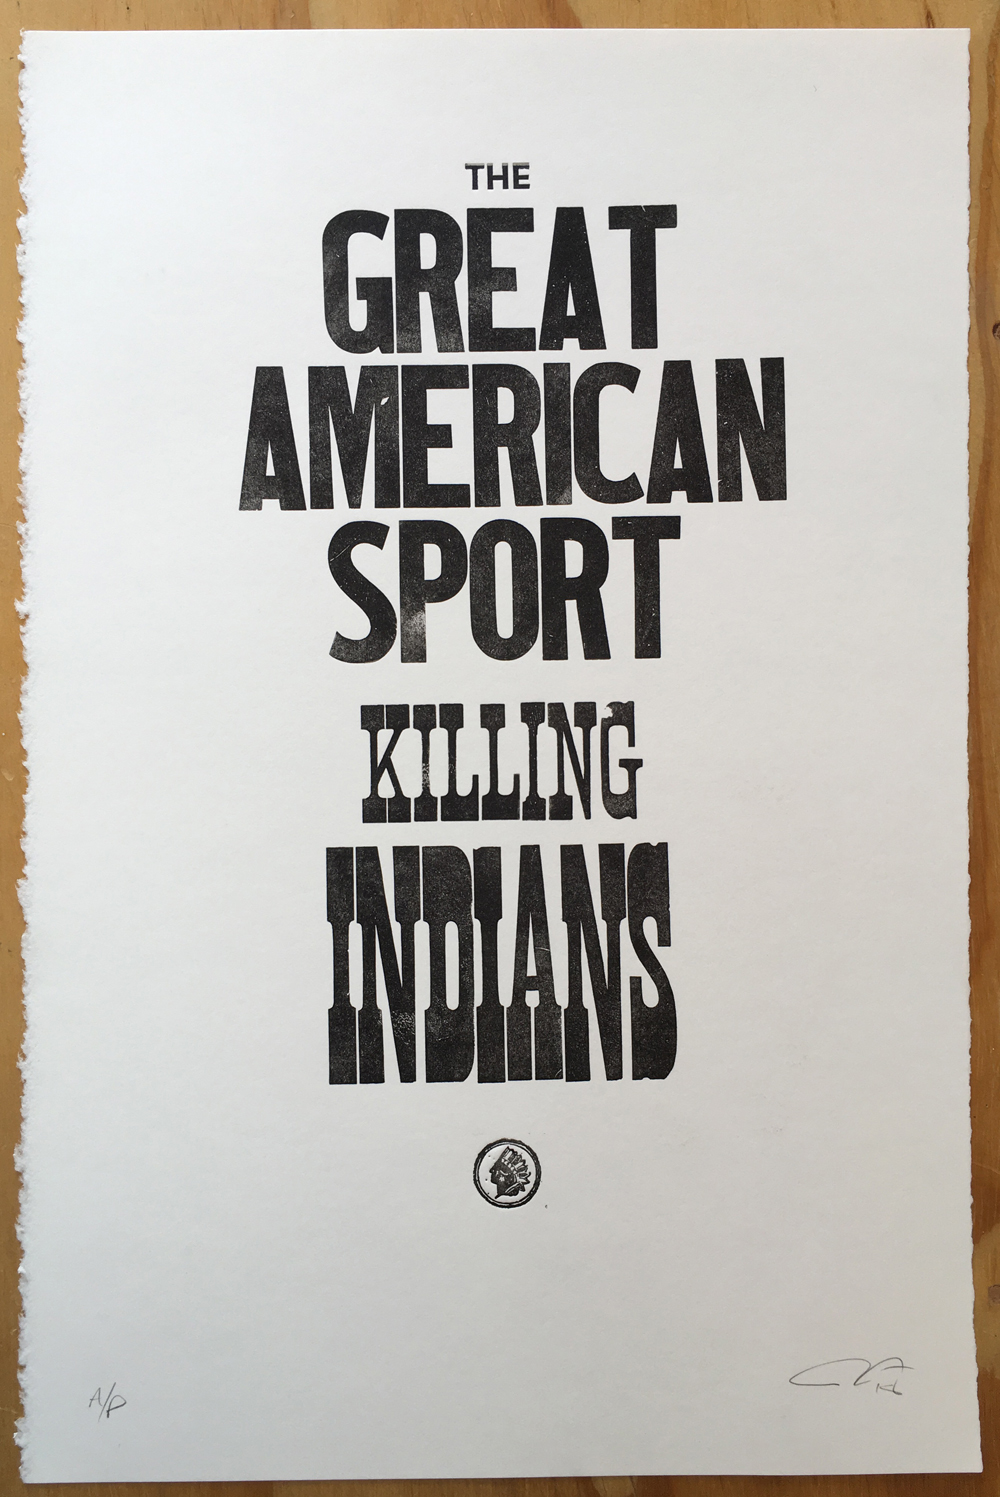 The Great American Sport